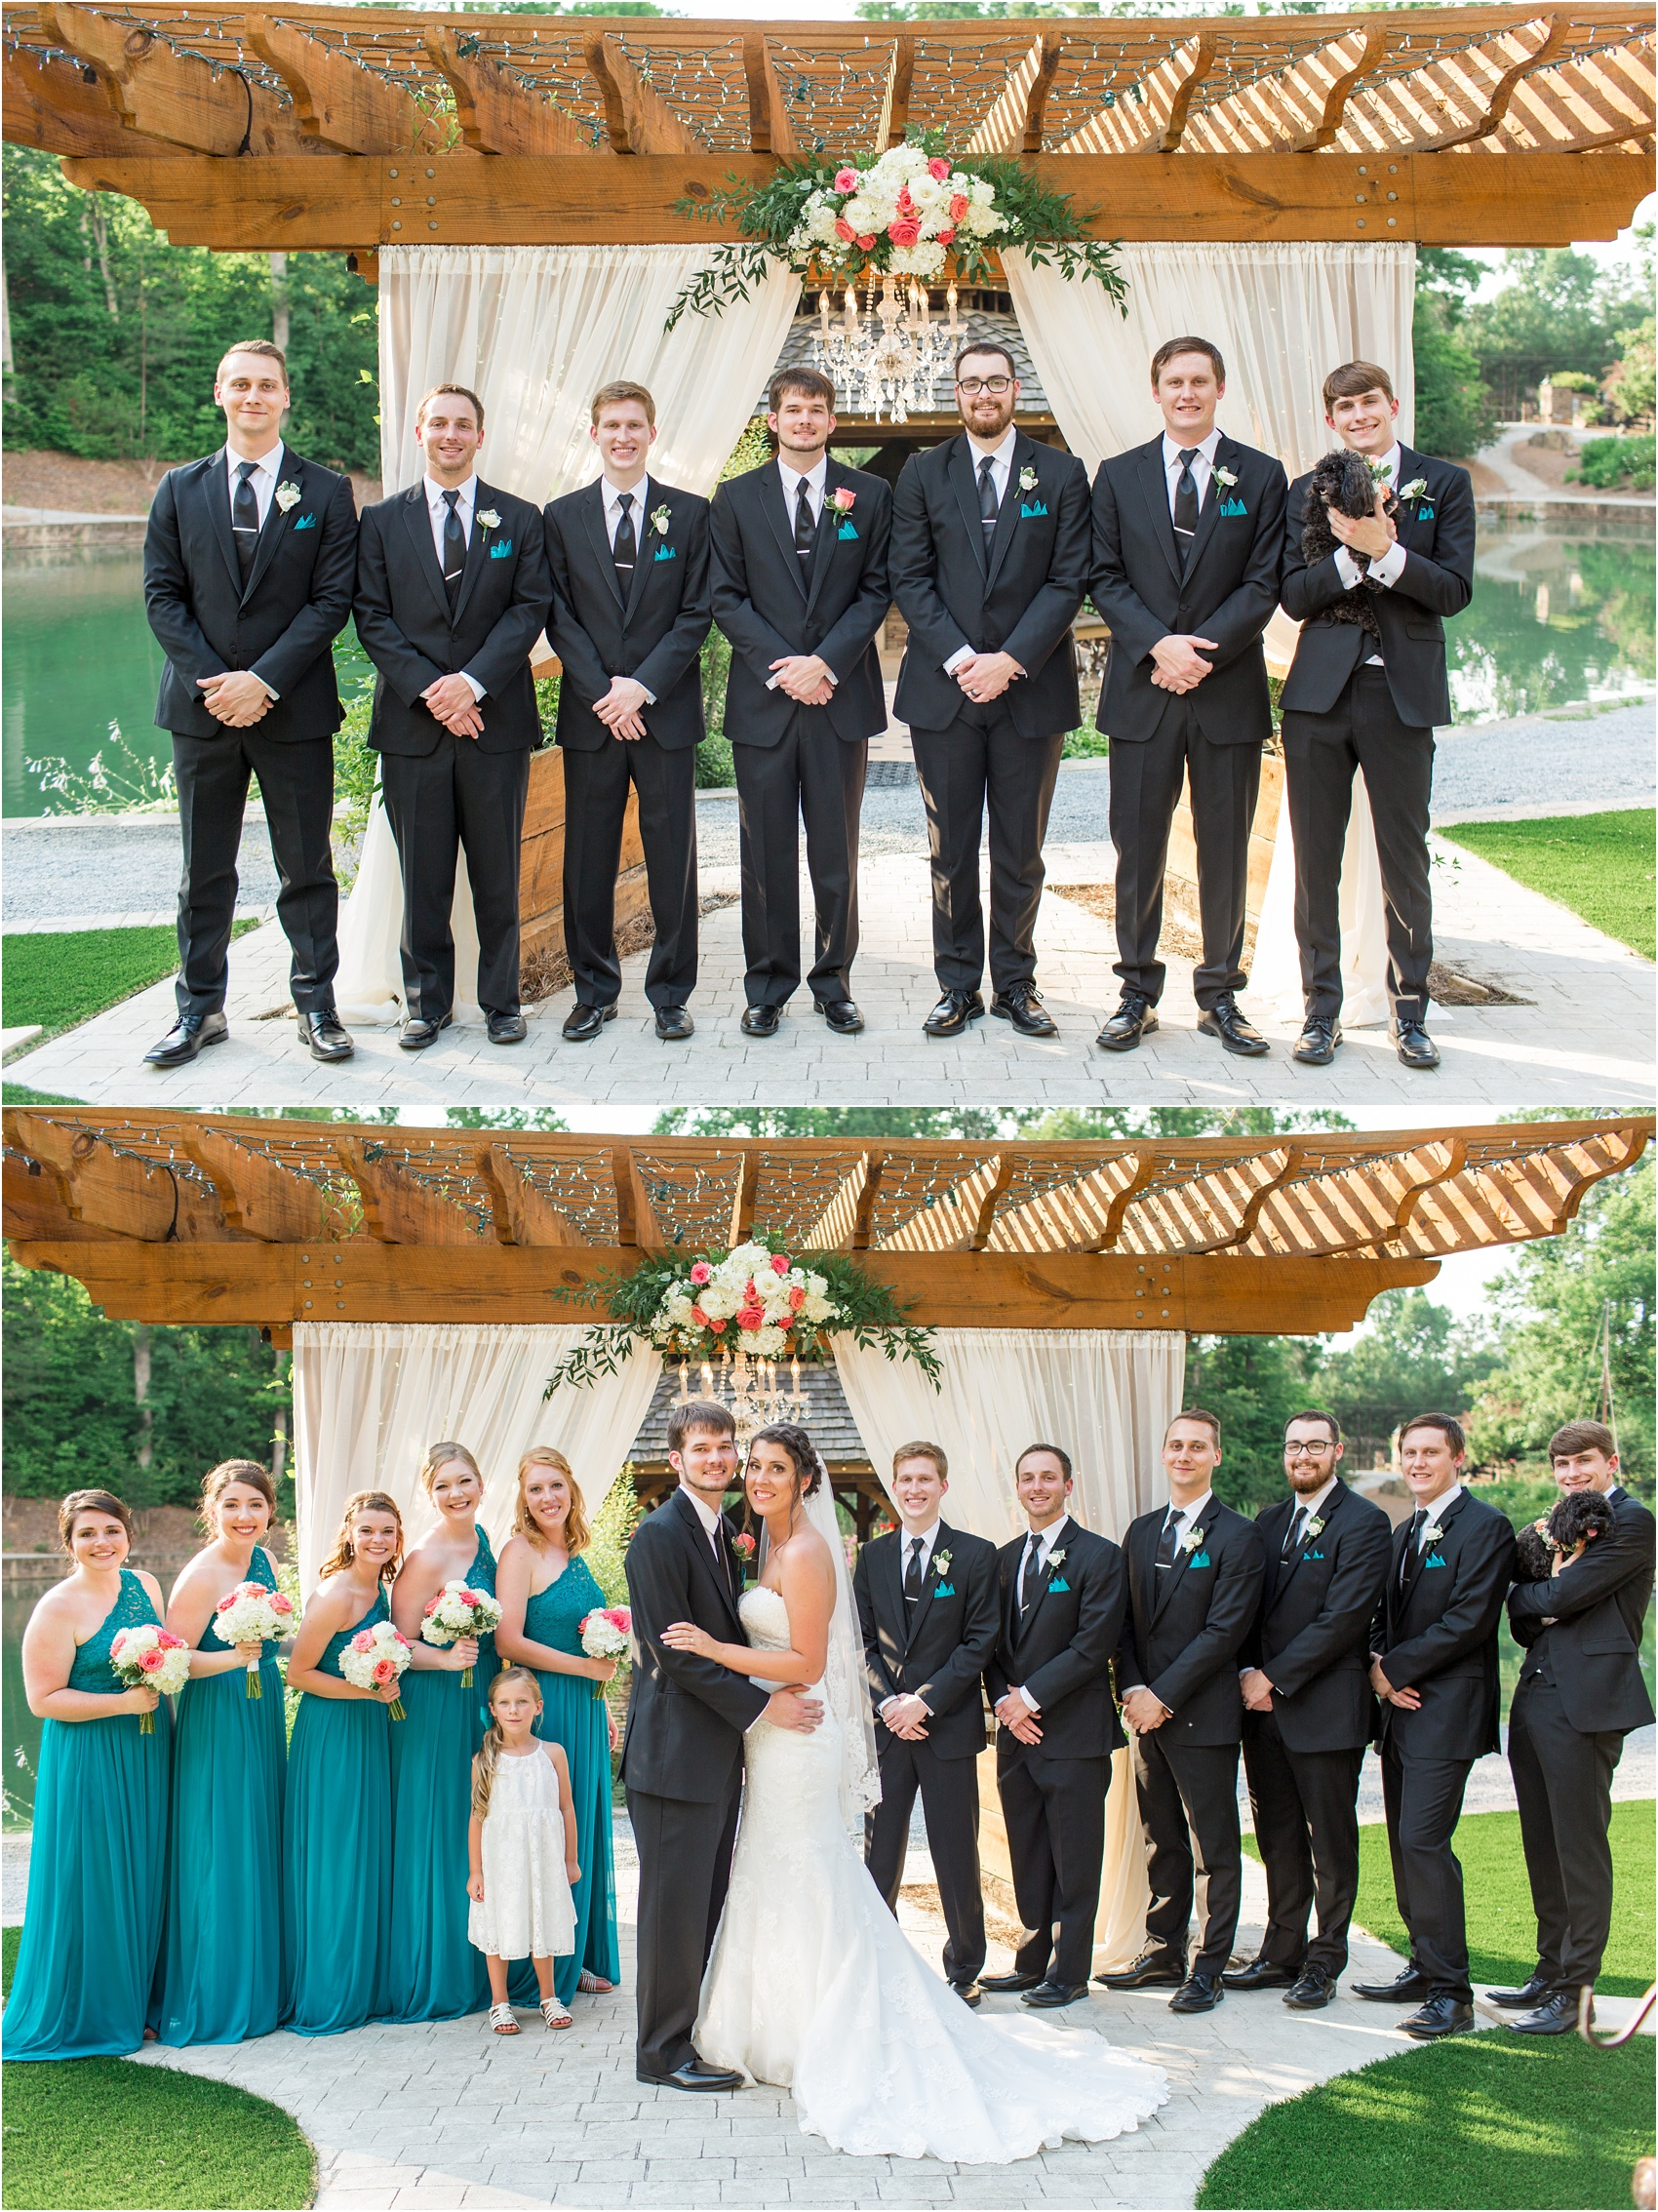 Savannah Eve Photography- Roberts-Brown Wedding- Sneak Peek-64.jpg